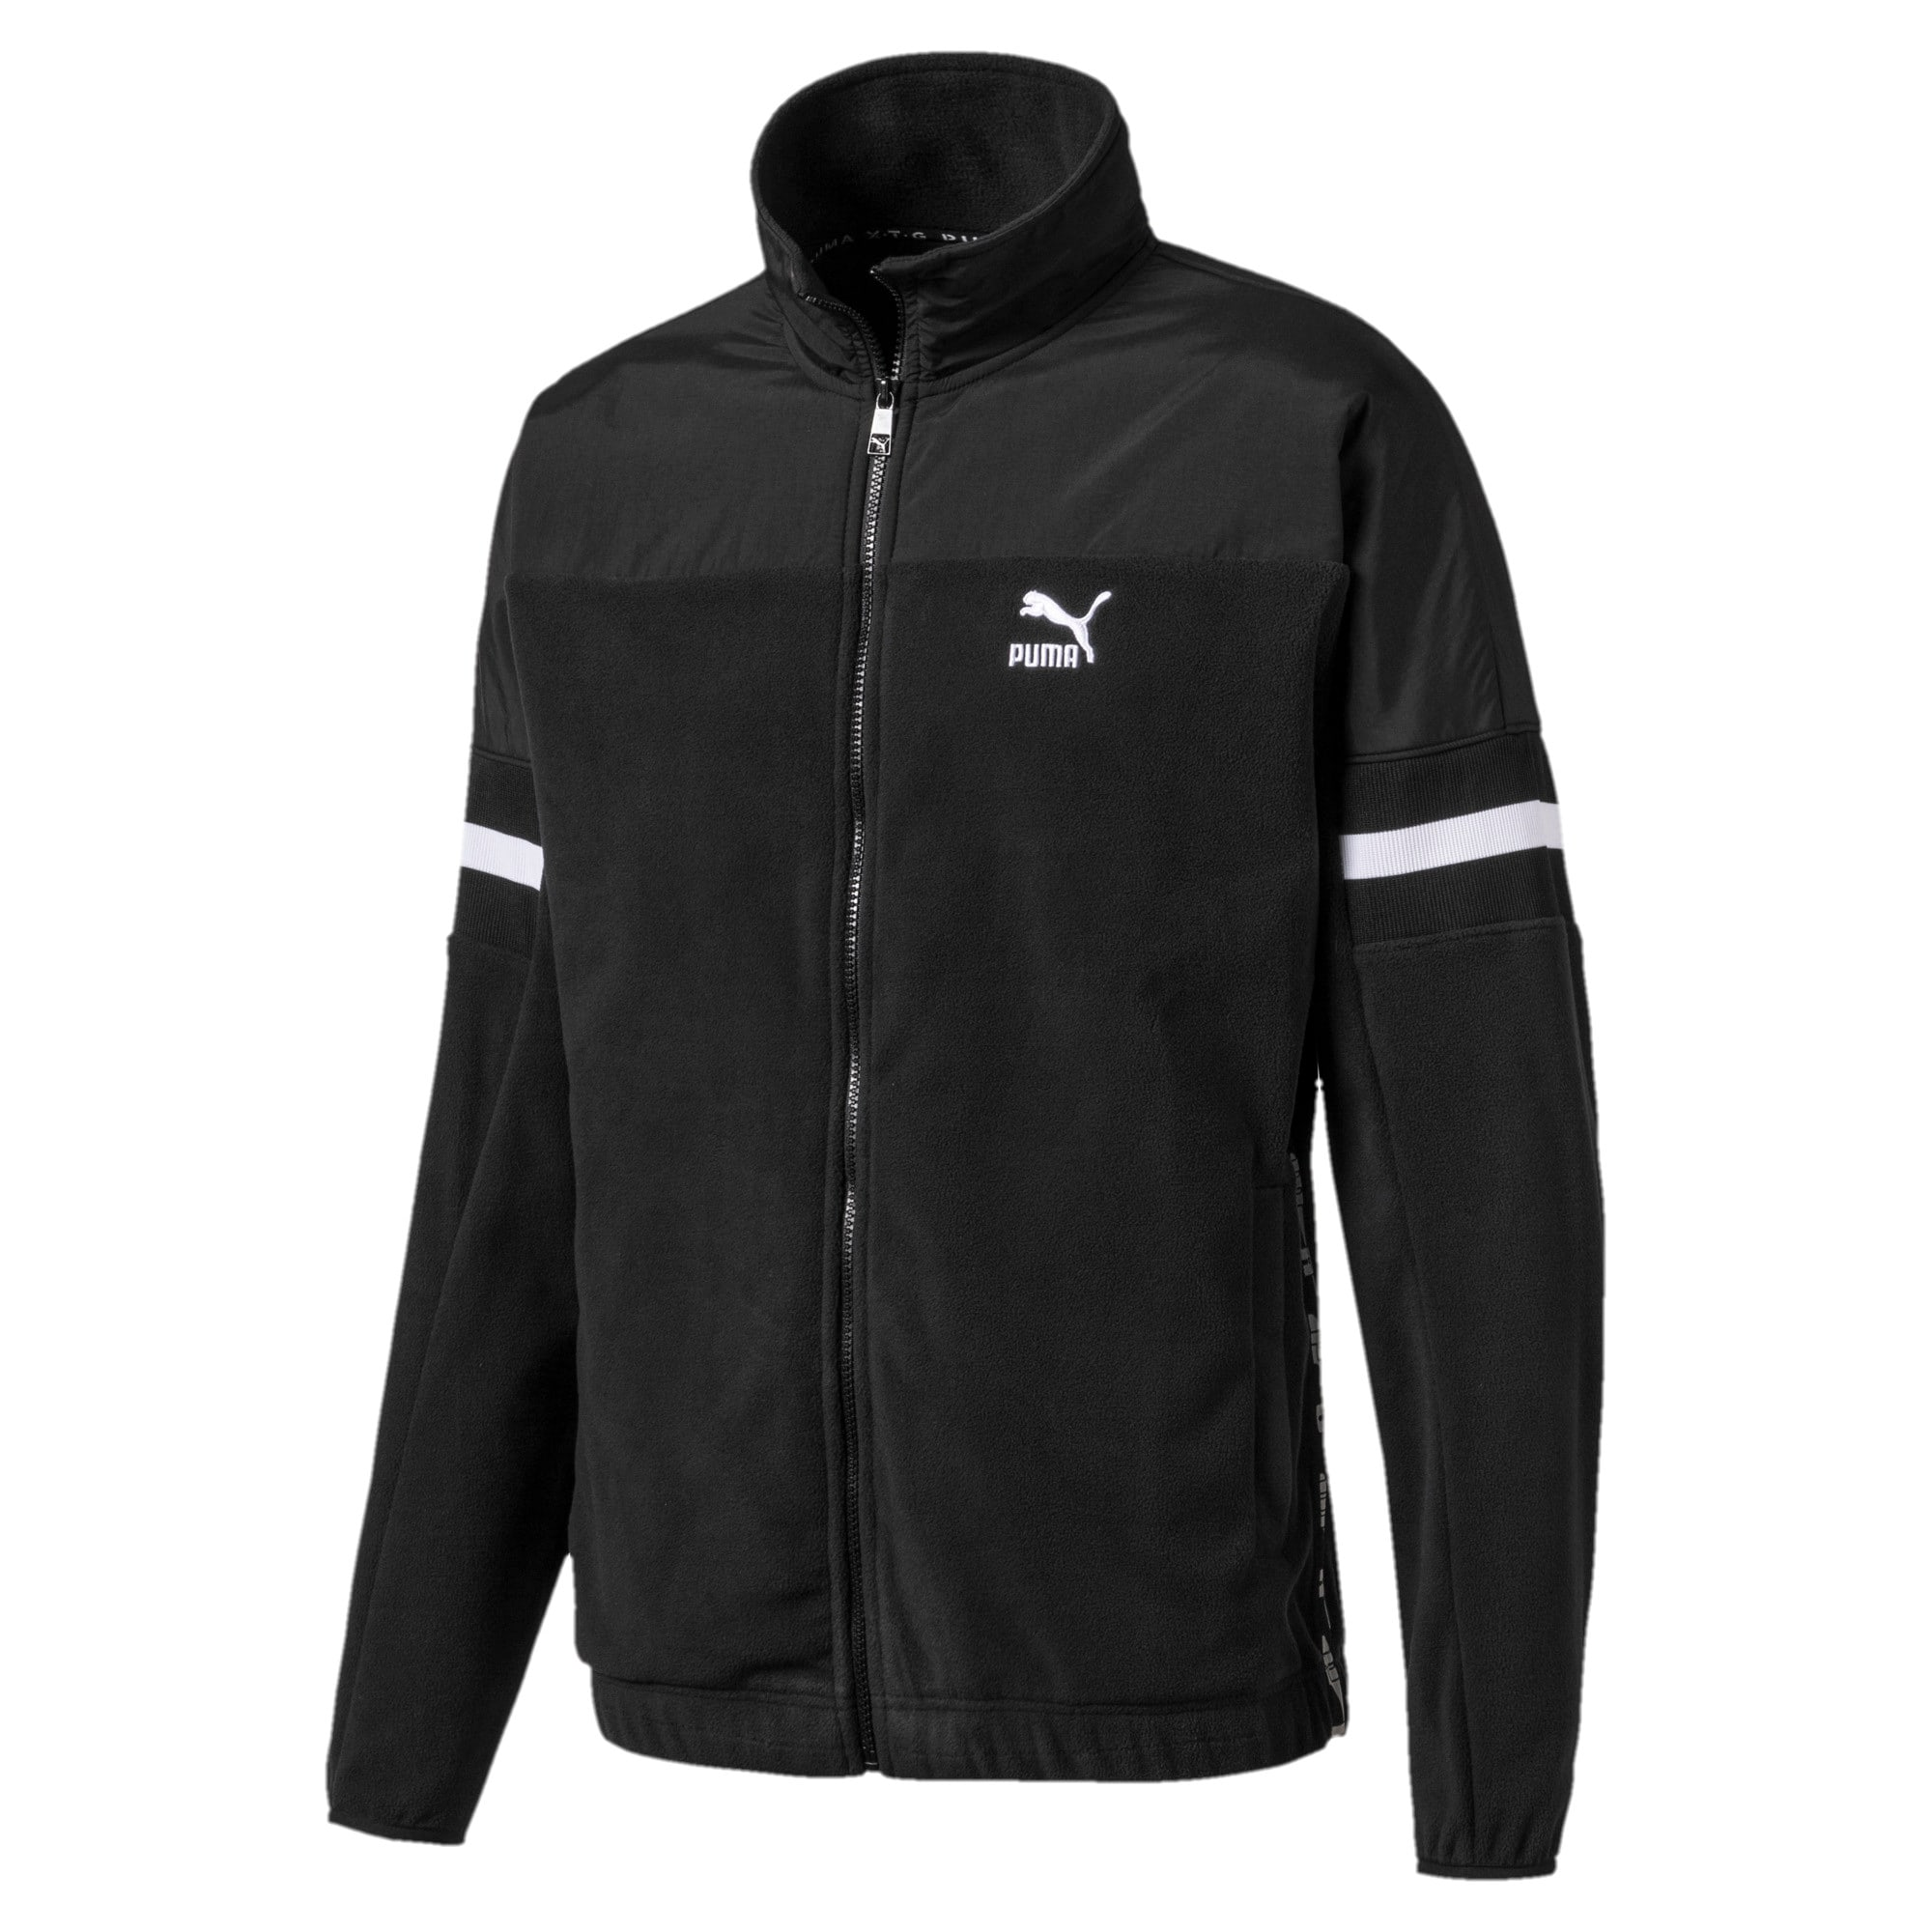 Thumbnail 1 of PUMA XTG Woven Men's Track Jacket, Puma Black, medium